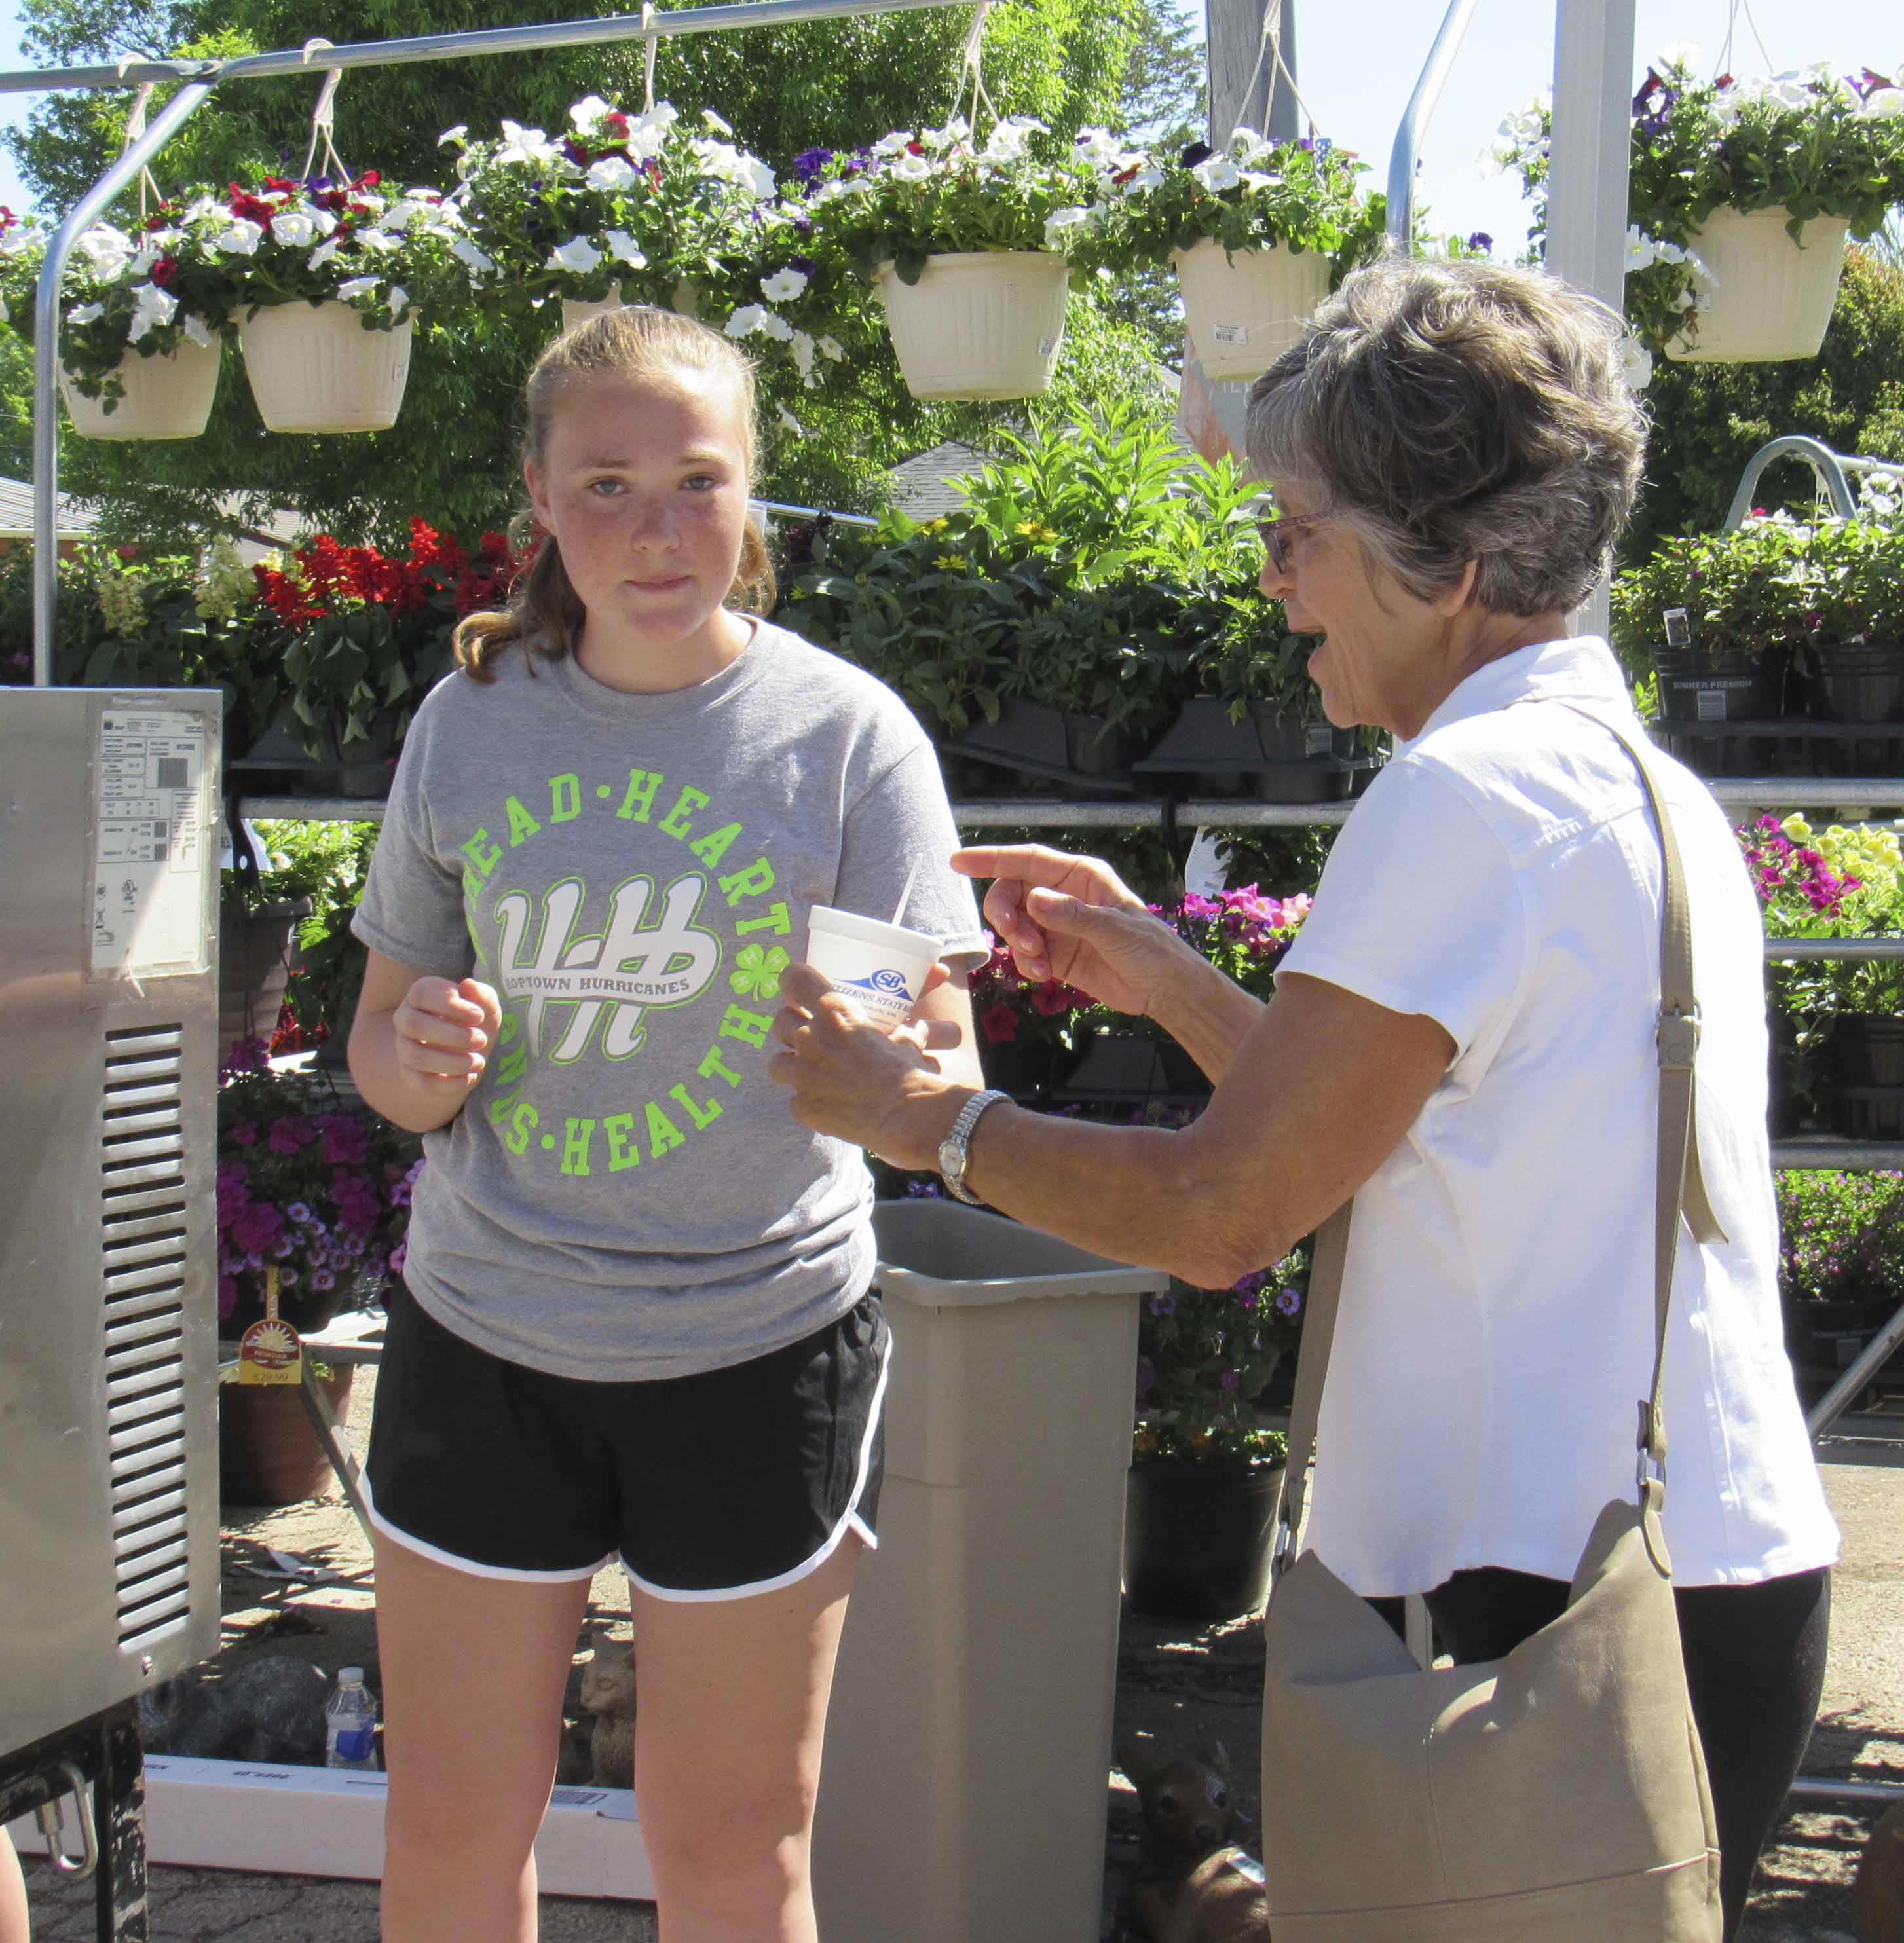 Abbie Sheehy with the Hopkinton Hurricanes 4-H Club passes out free ice cream to those in attendance at the Theisen's Open House. The hot temperatures that morning prompted many to cool off with ice cream.